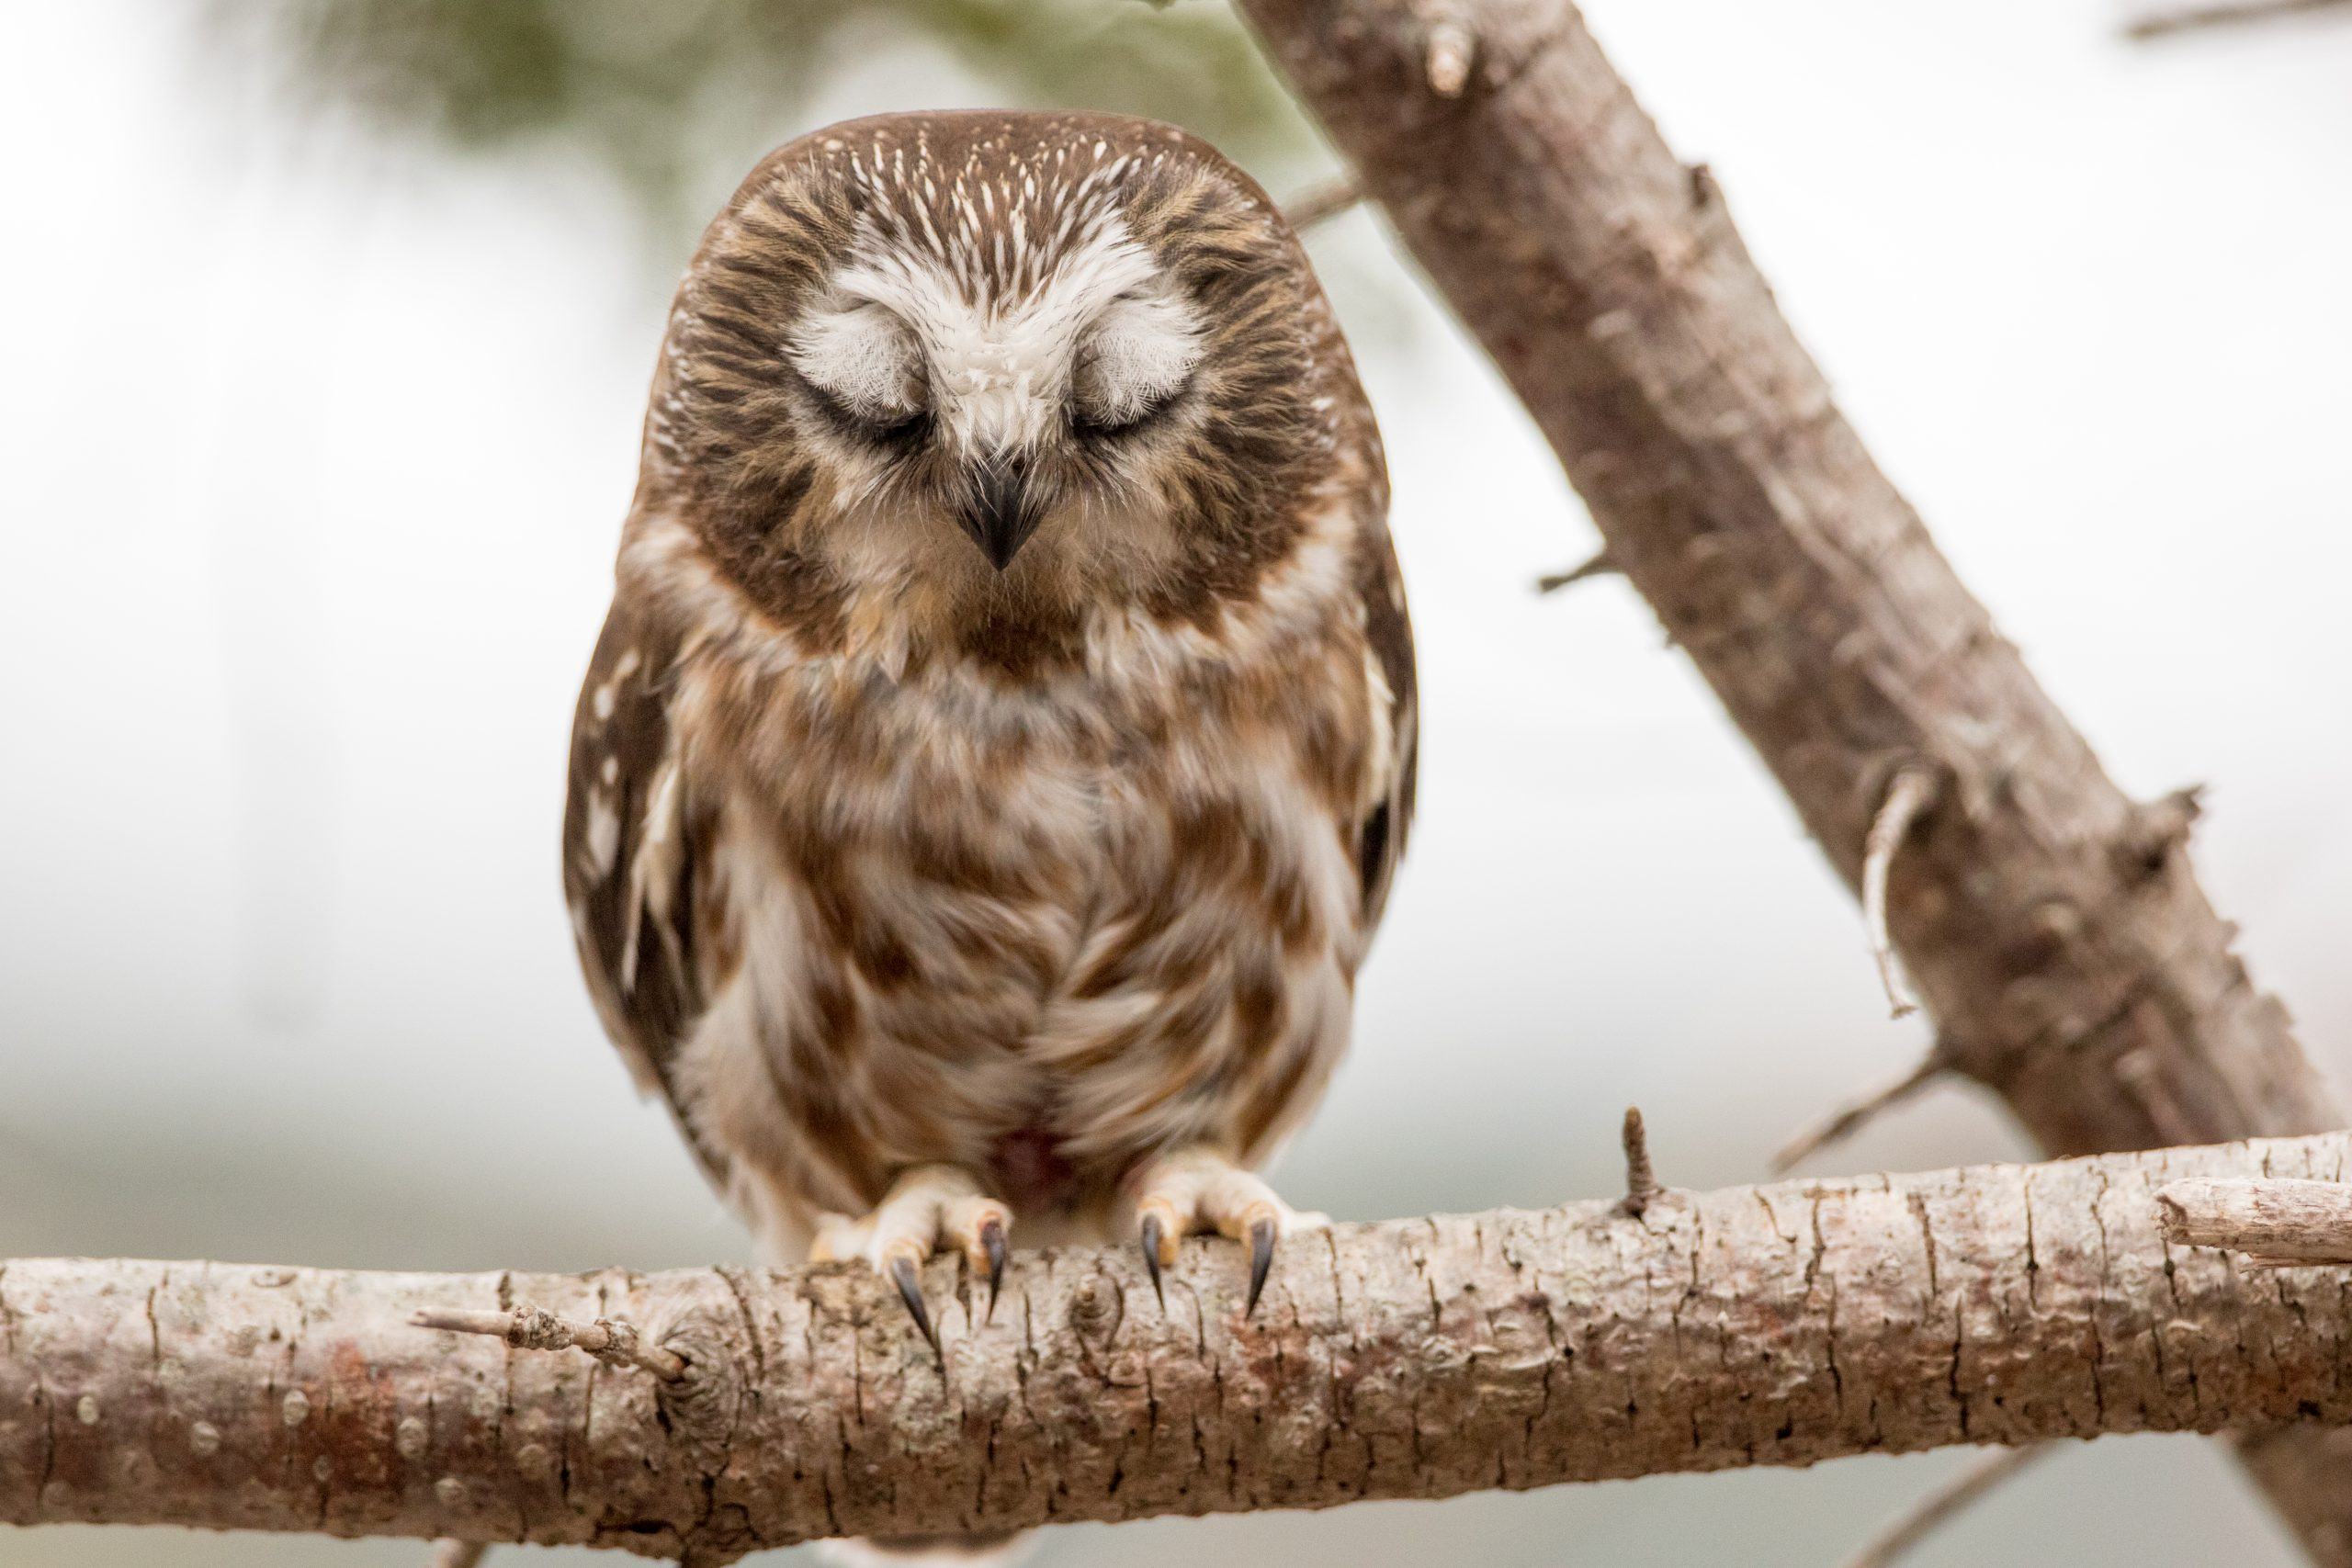 Northern Saw-whet Owl with eyes shut